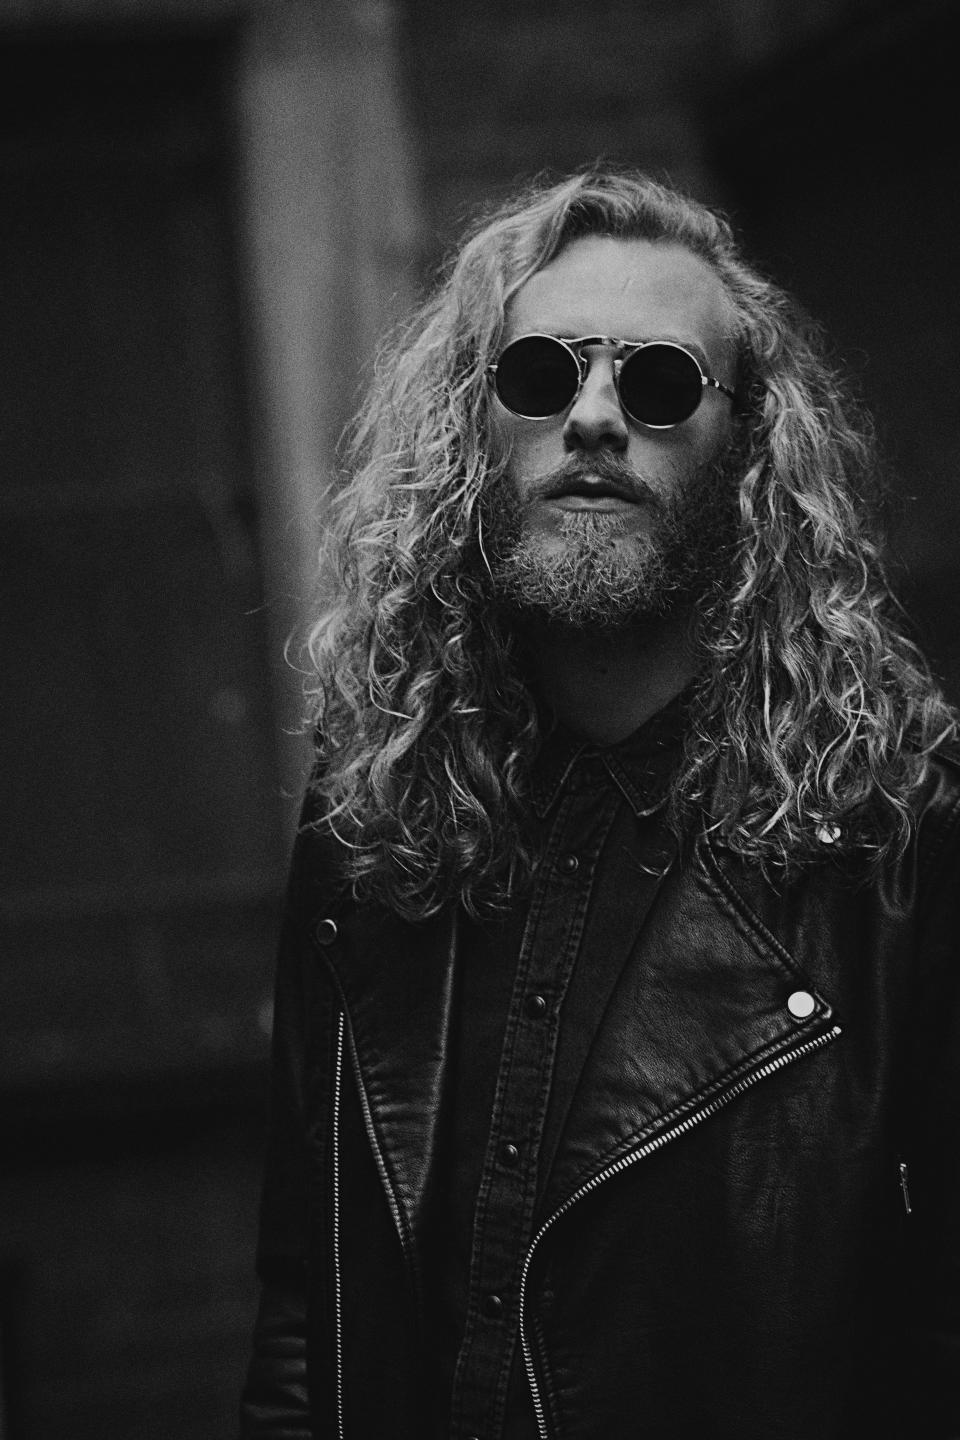 people man guy black leather jacket rock curly hair beard sunglasses black and white